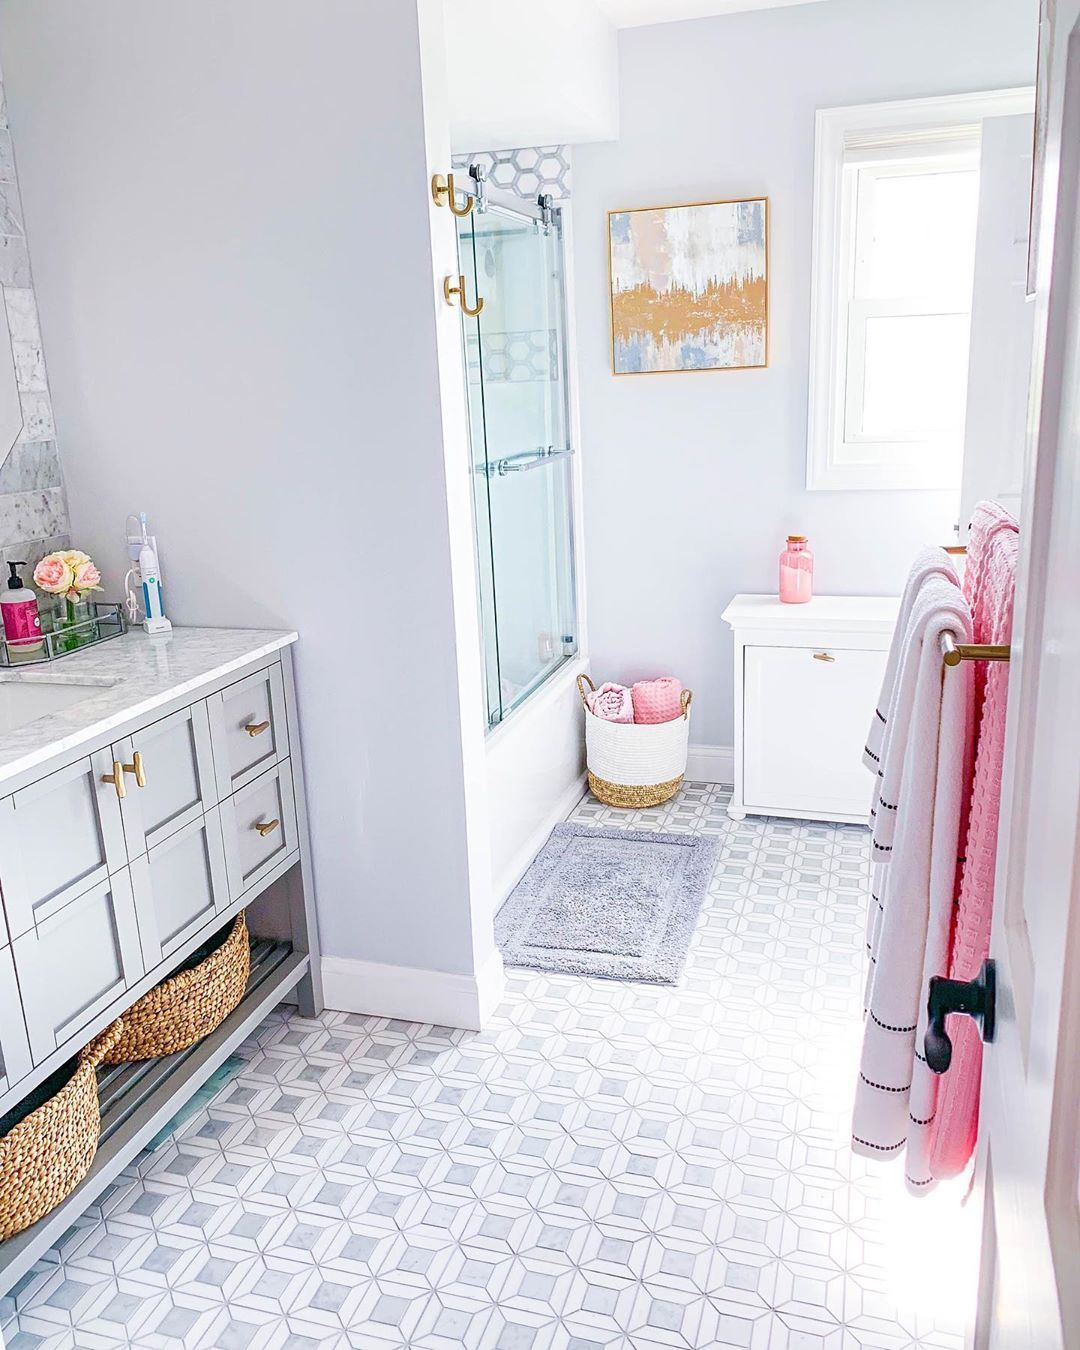 Alexandra Beuter On Instagram If You Saw Yesterday S Video You Know My Bathroom Did Not Wake Up Like This Tak Home Interior Design Home Decor Home